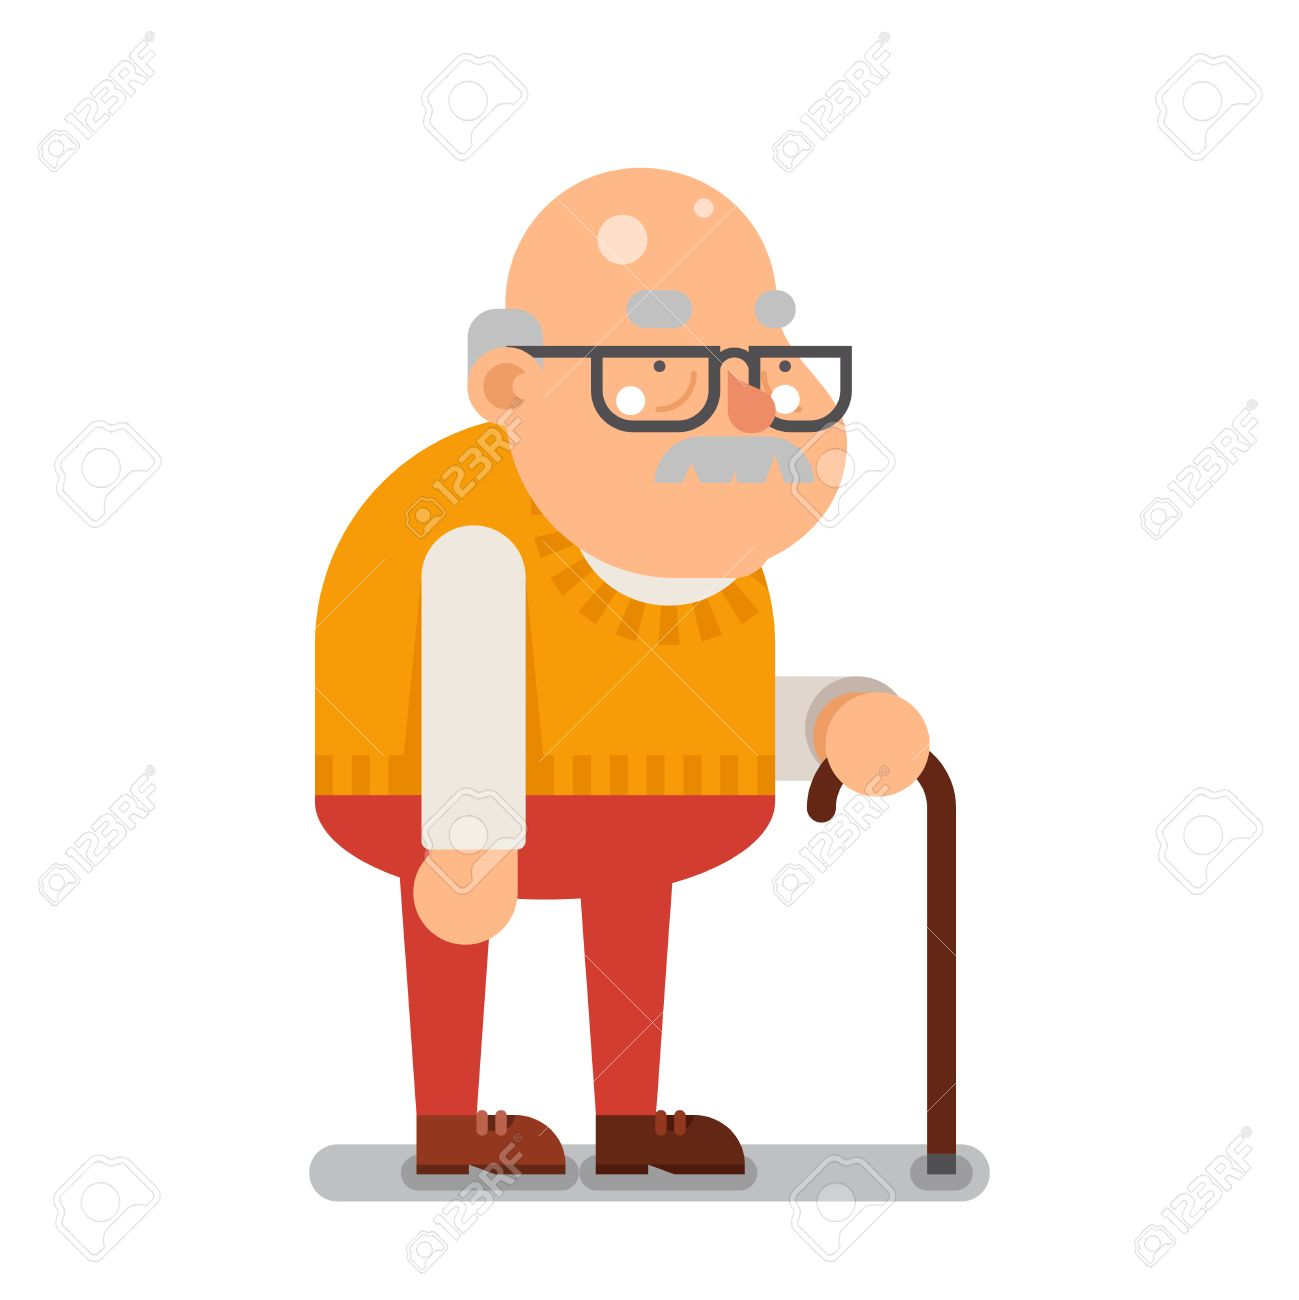 grandfather old man character cartoon flat illustration royalty free